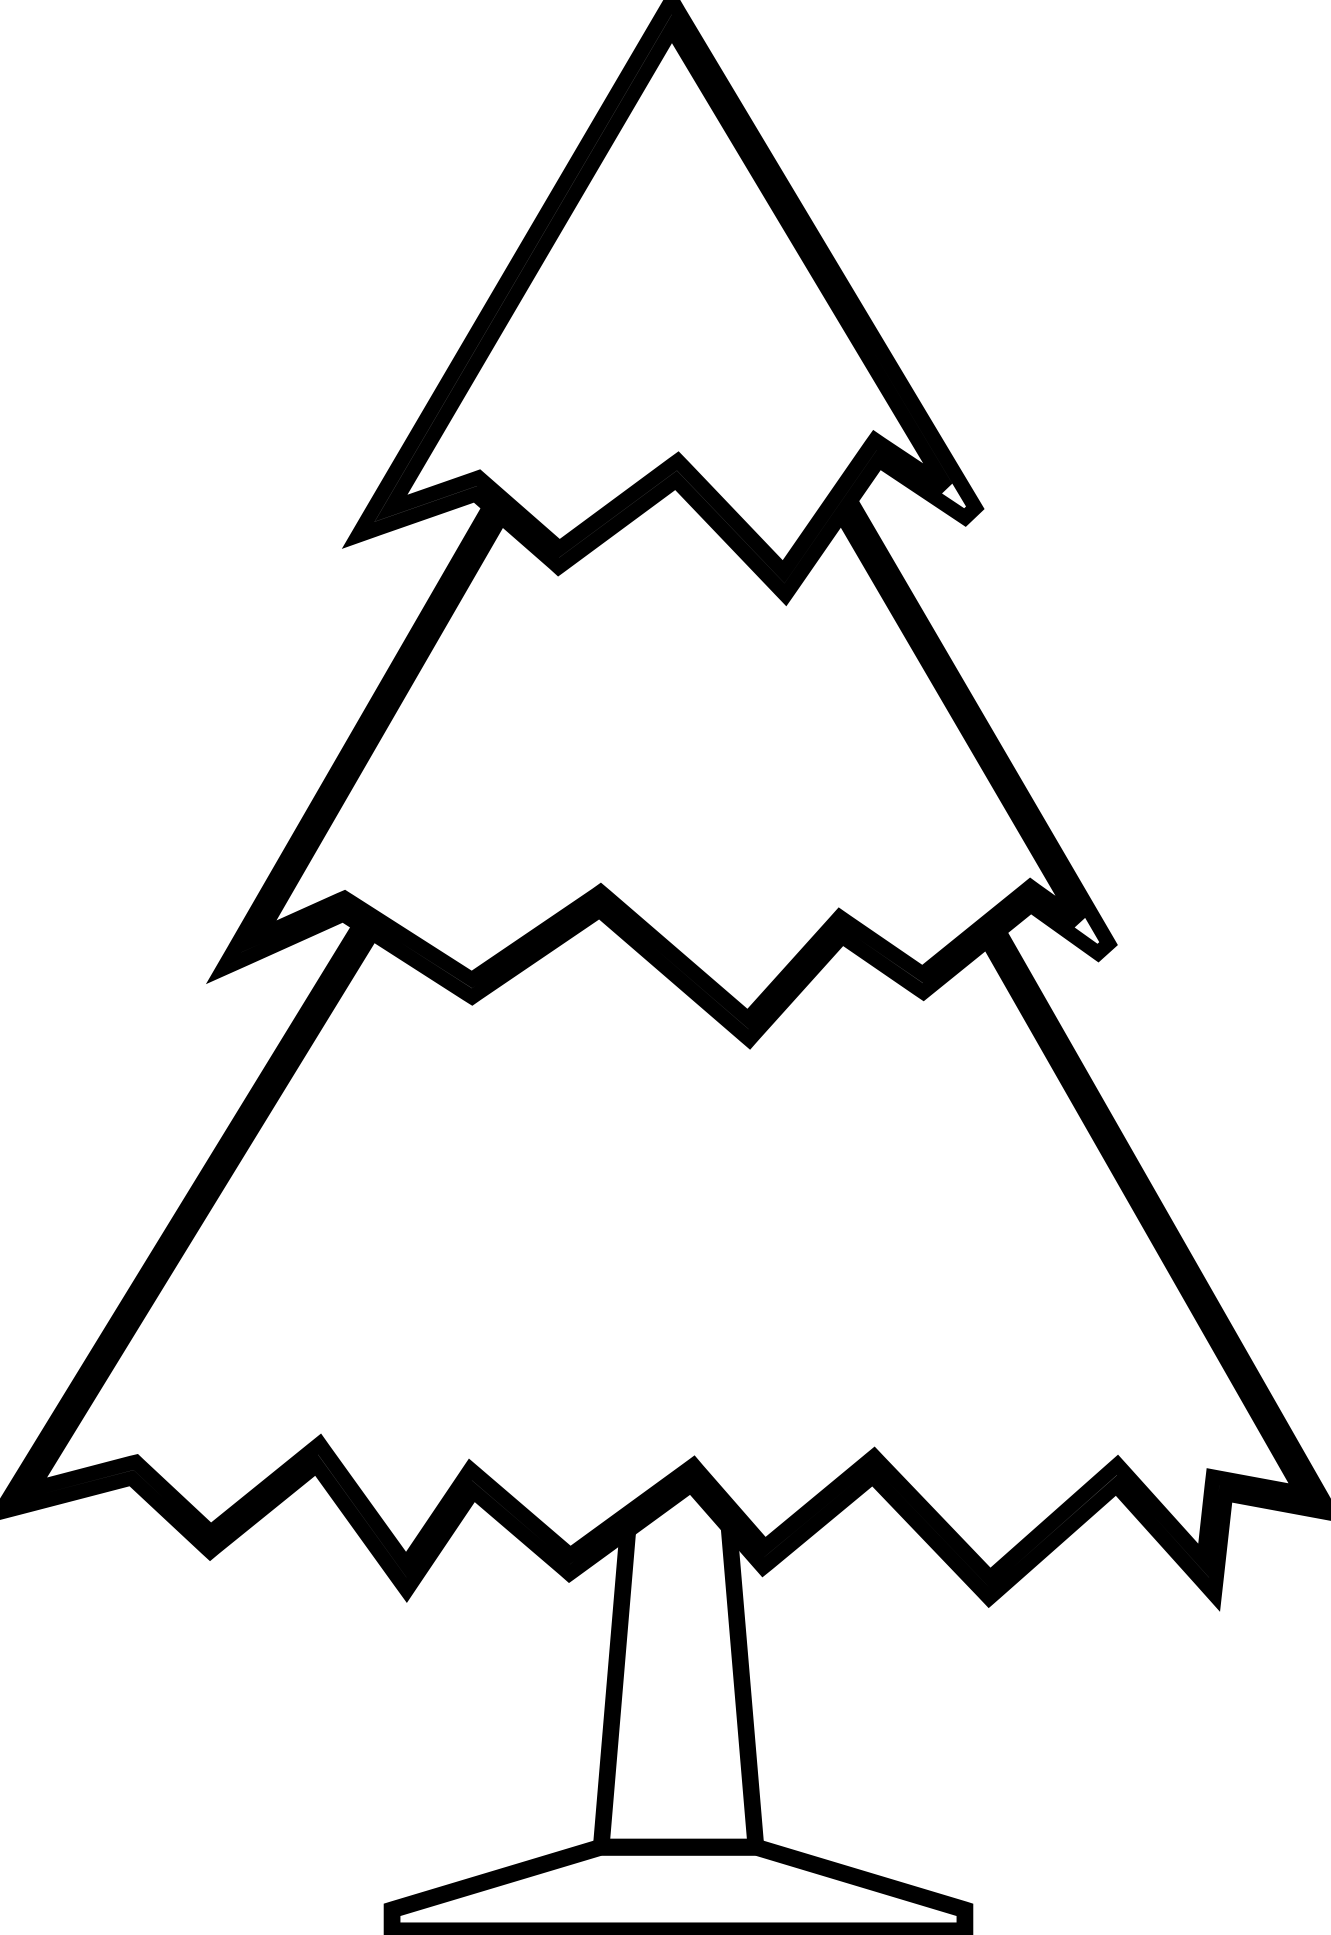 White Christmas Tree Clip Art - ClipArt Best - ClipArt Best